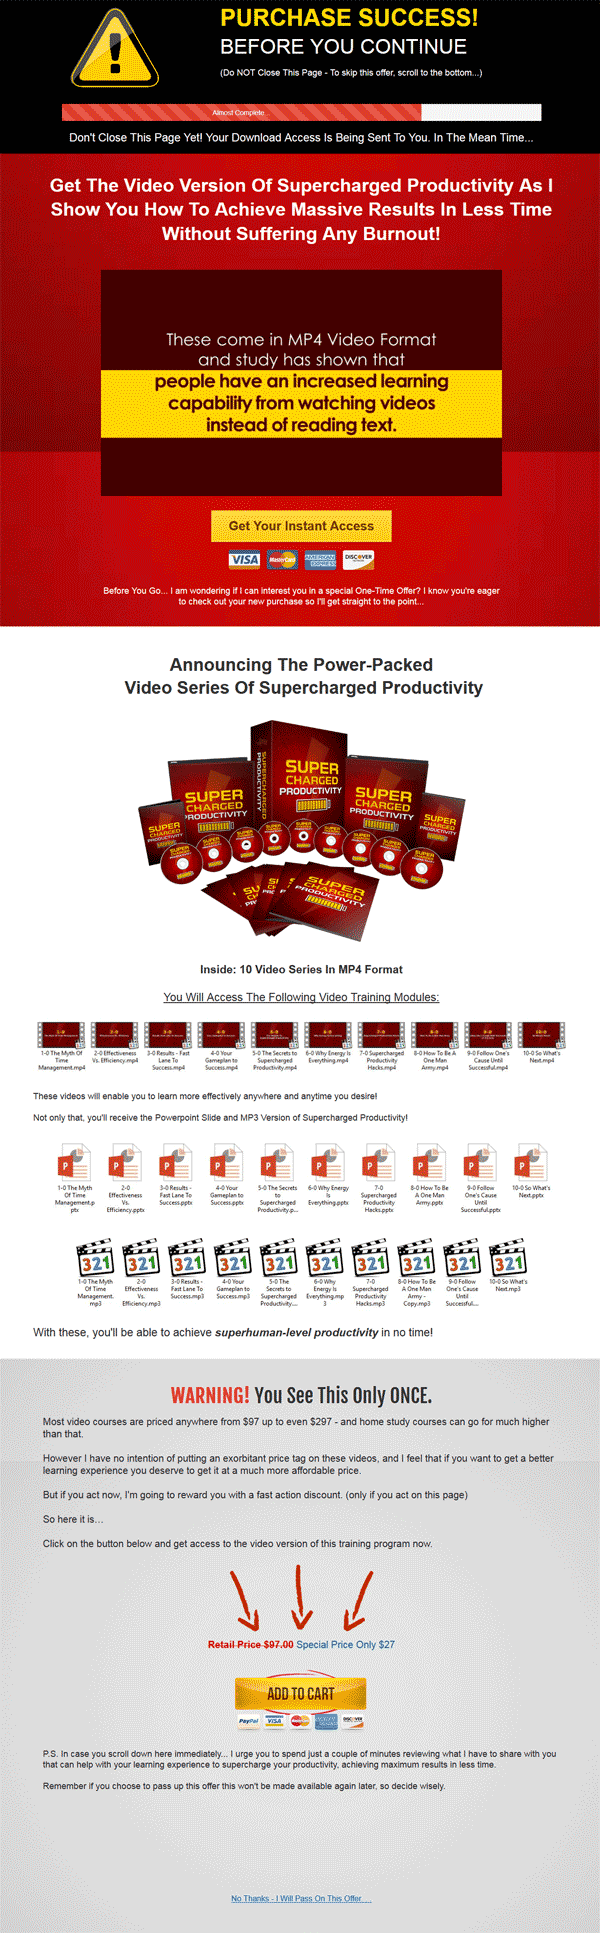 Supercharged Productivity Ebook and Videos with Master Resale Rights